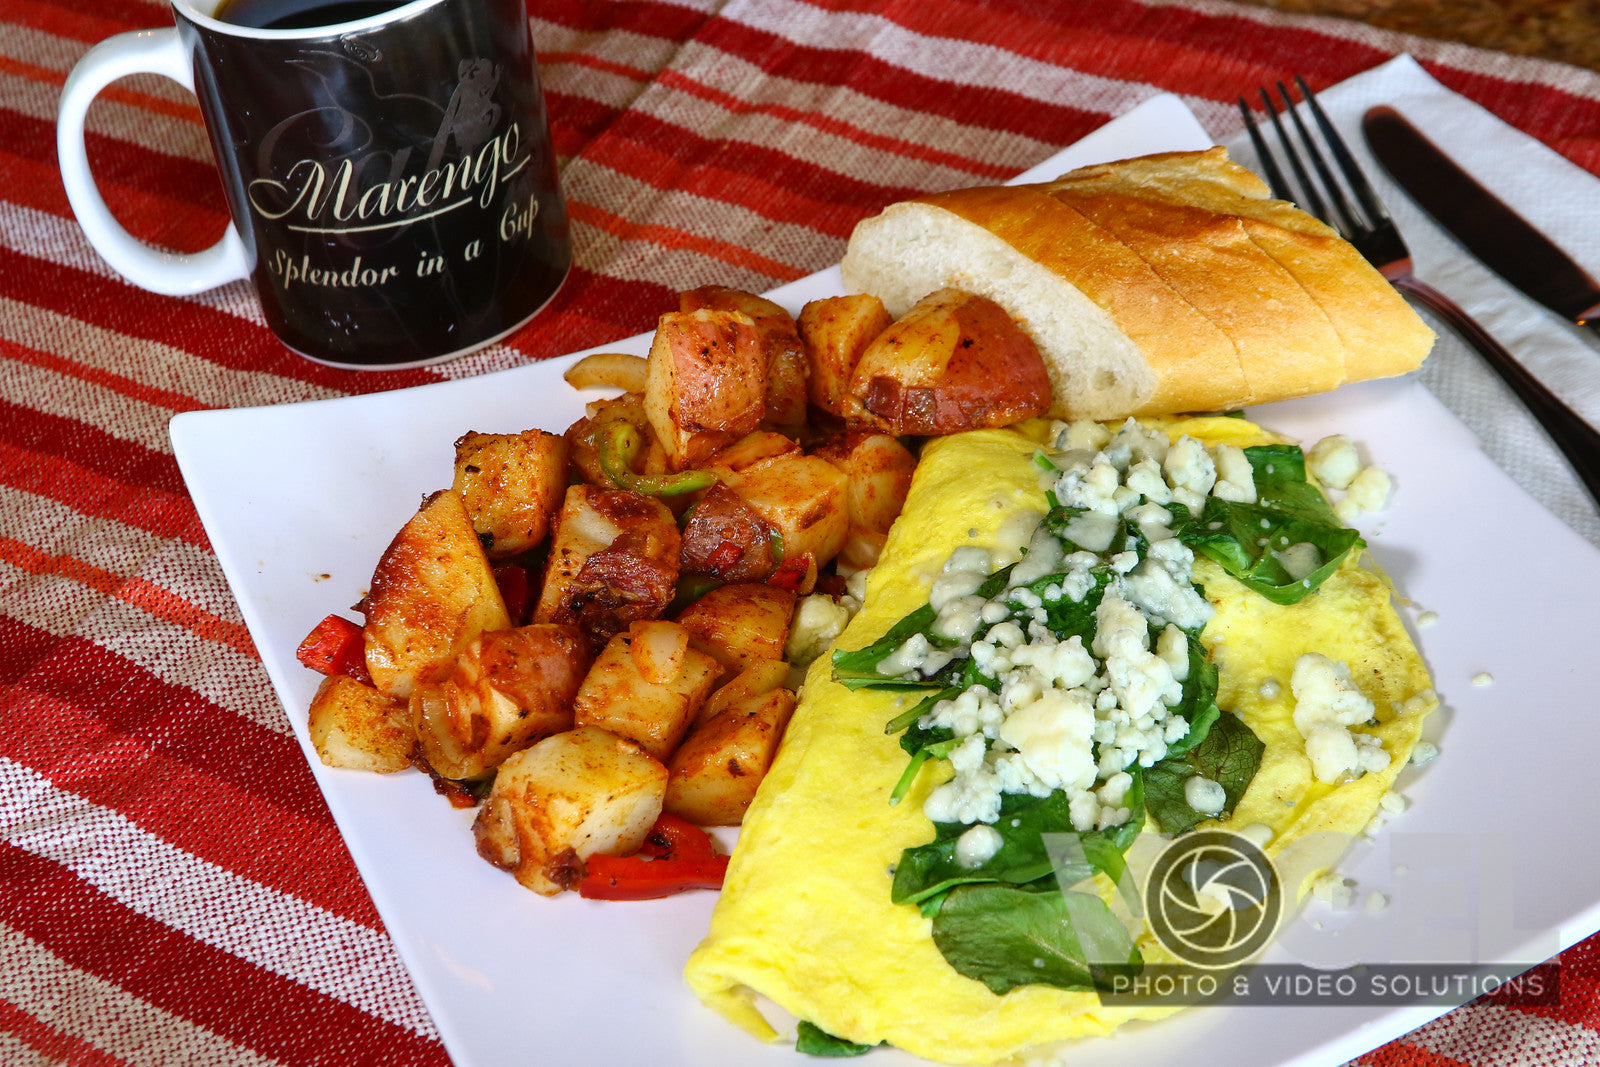 Spinach & Blue cheese Omelette